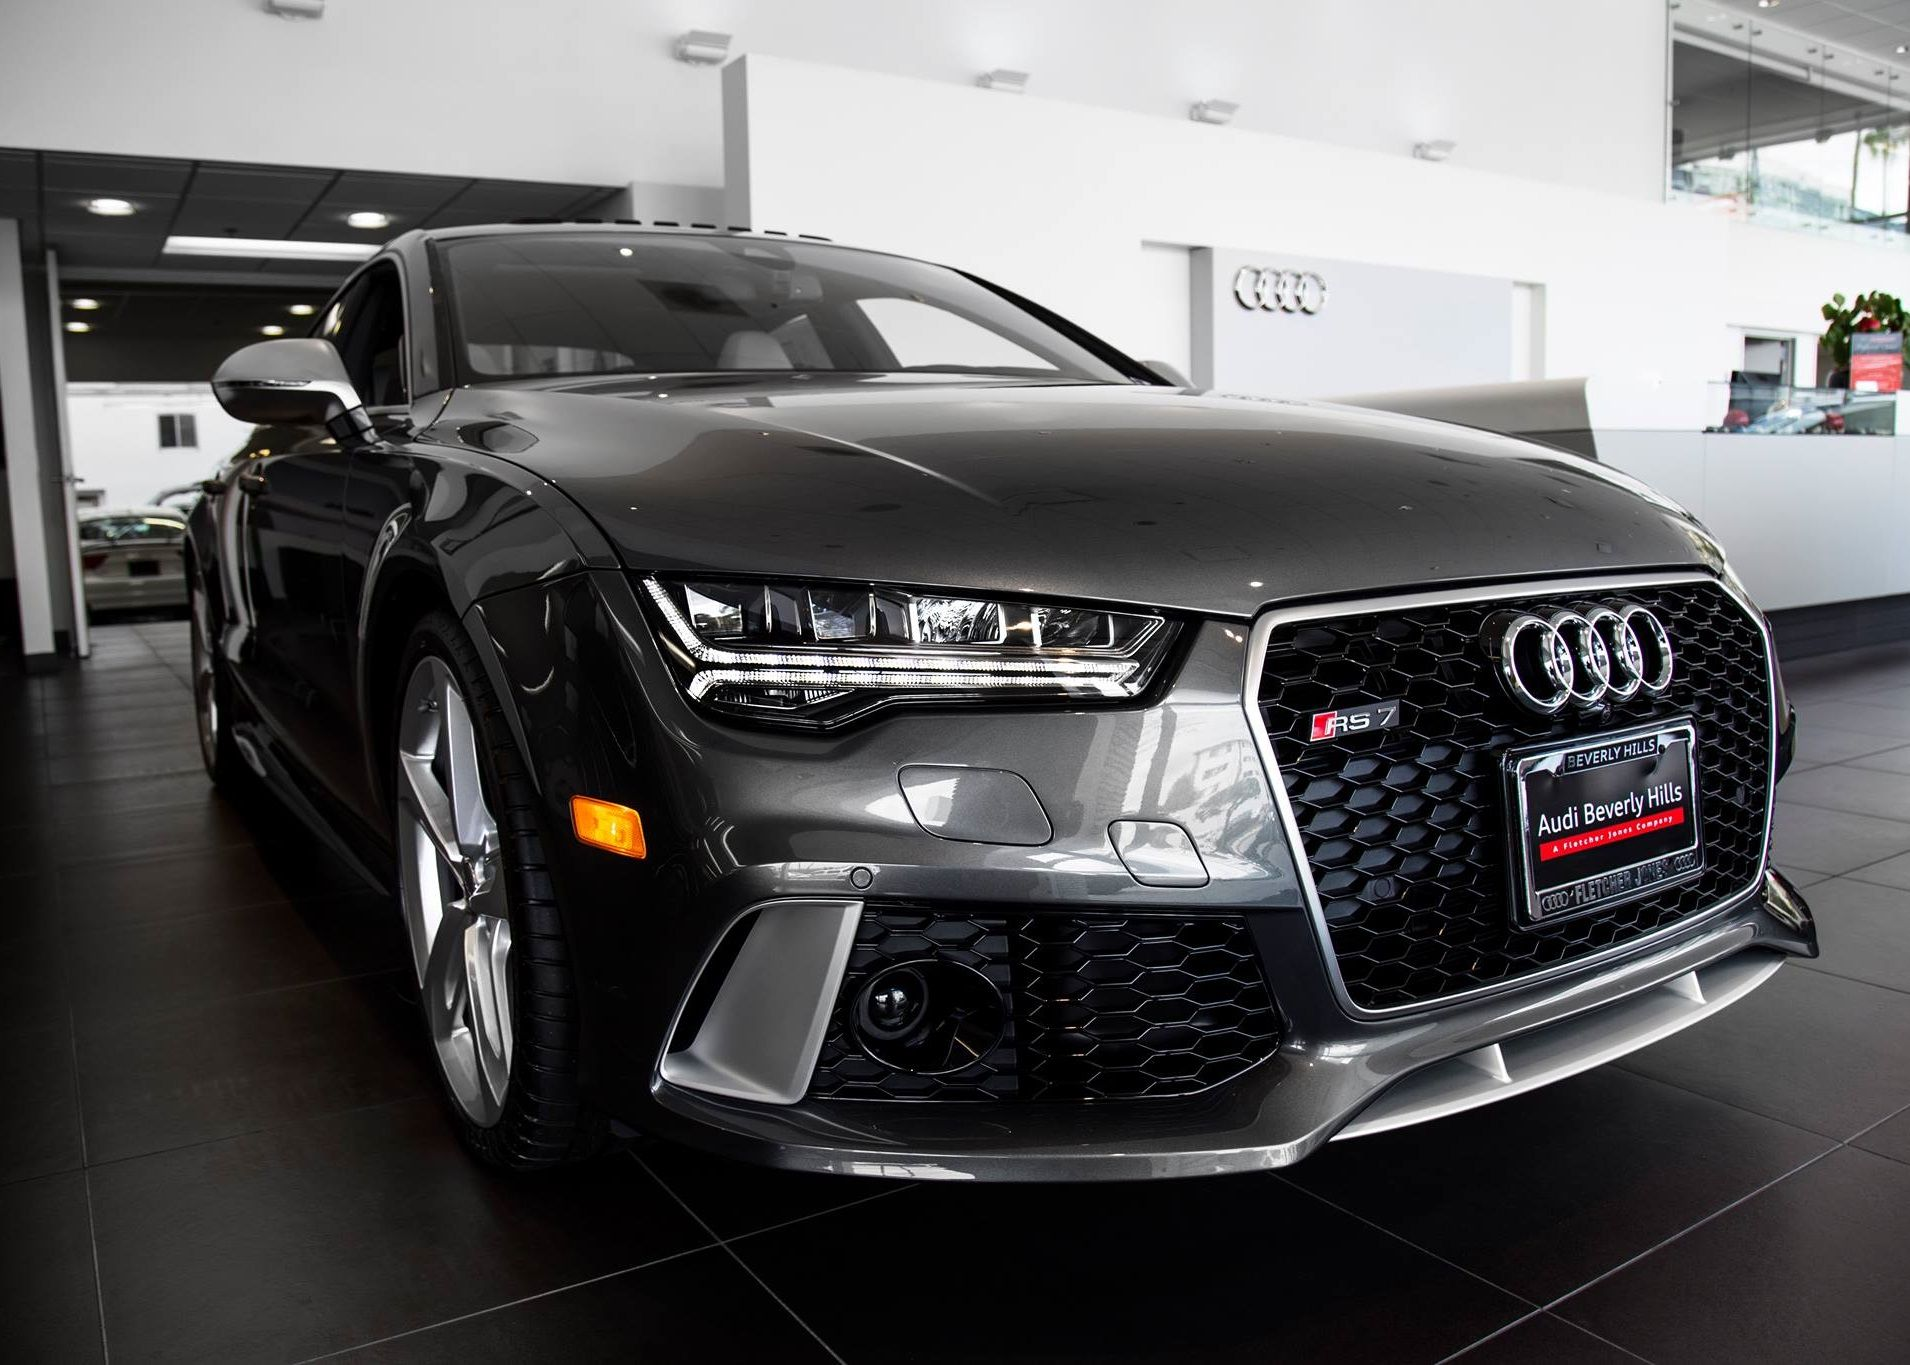 Audi Rs7 In Daytona Grey Pearl Effect With Lunar Silver Interior And